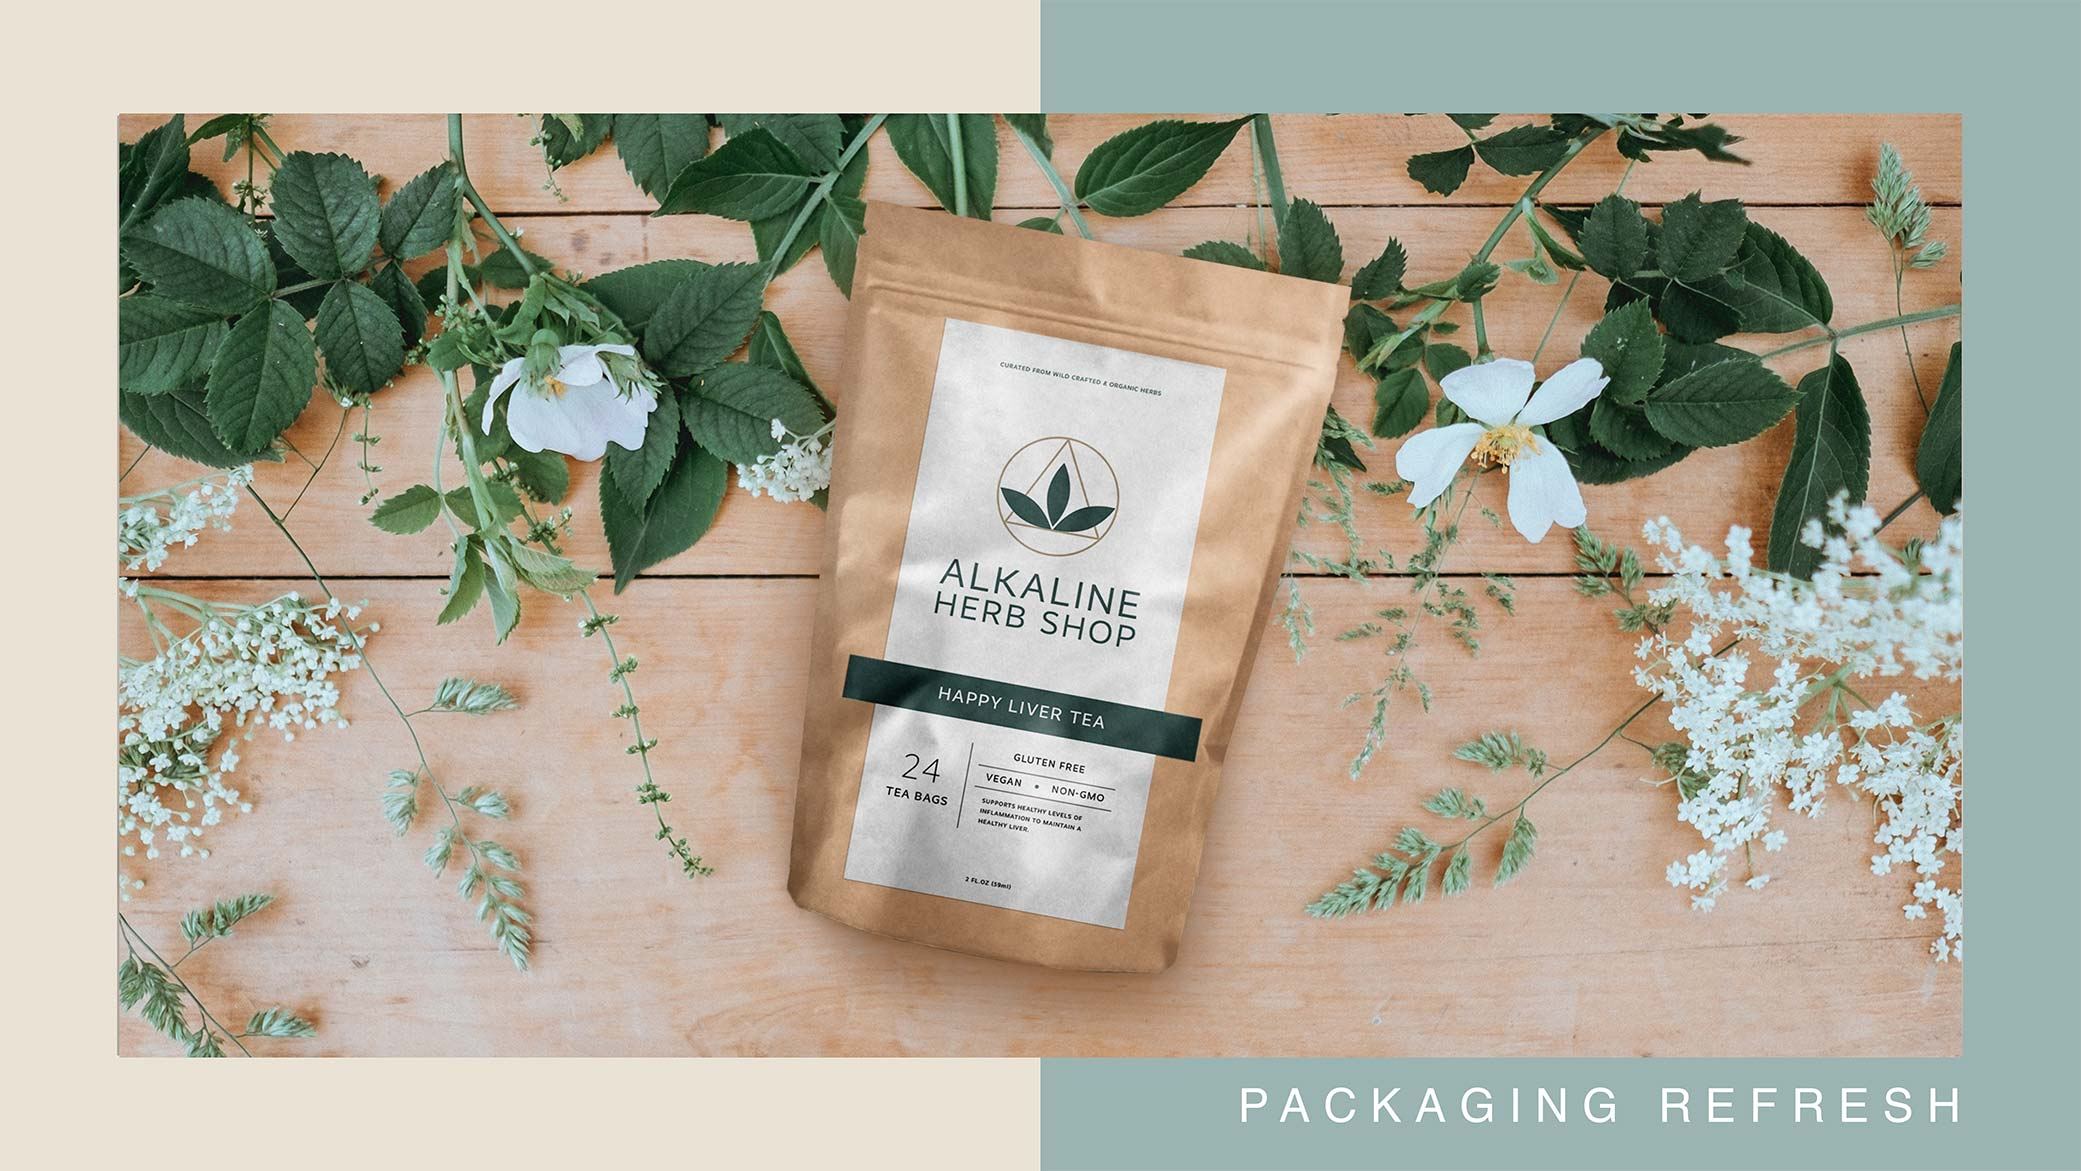 Alkaline Herb Shop supplement brand package design for Happy Liver Tea with accent leaves and flowers.